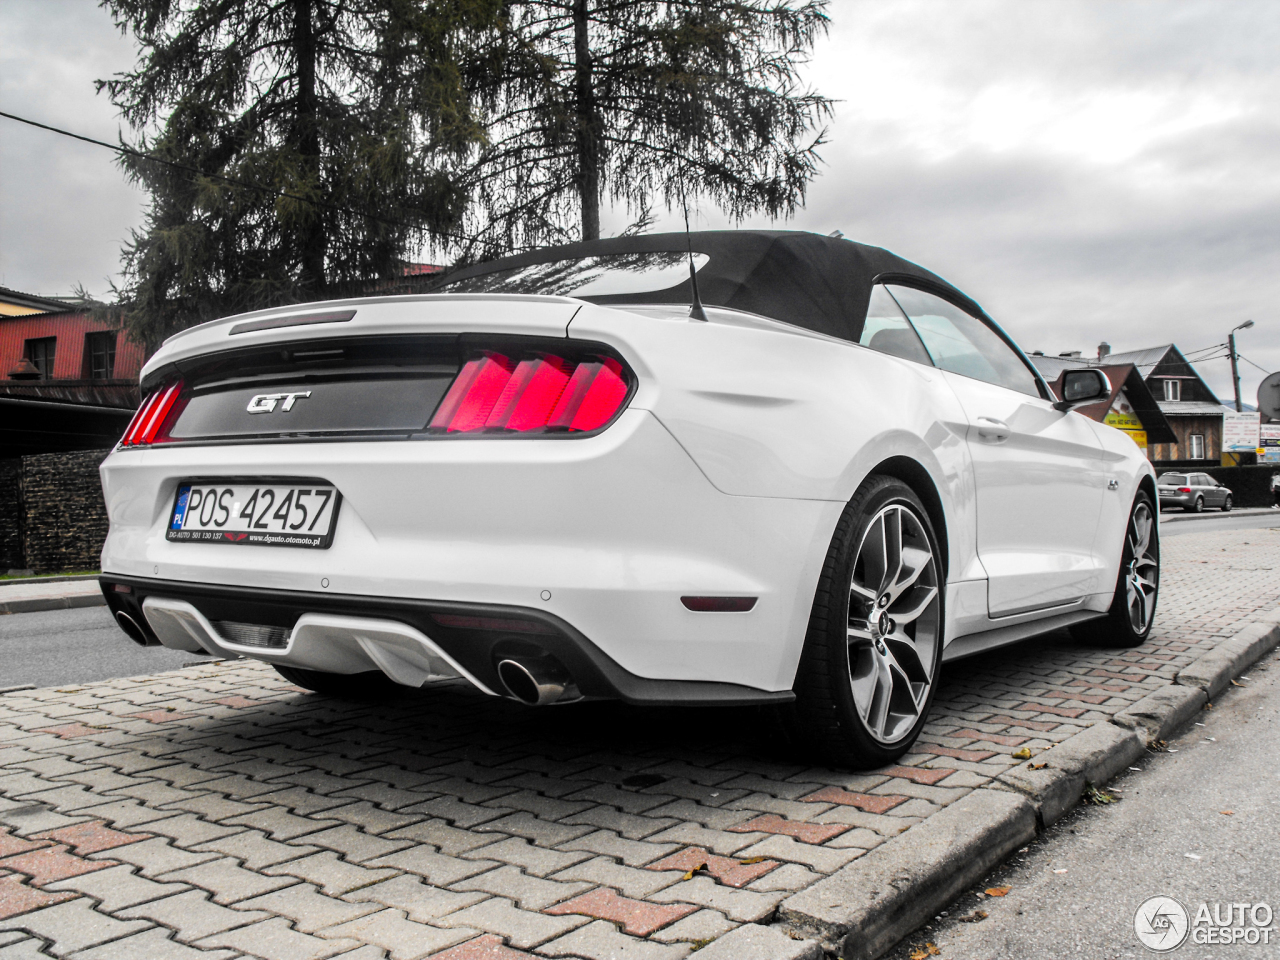 Ford Mustang GT Convertible 2015 - 20 May 2017 - Autogespot  Ford Mustang GT...